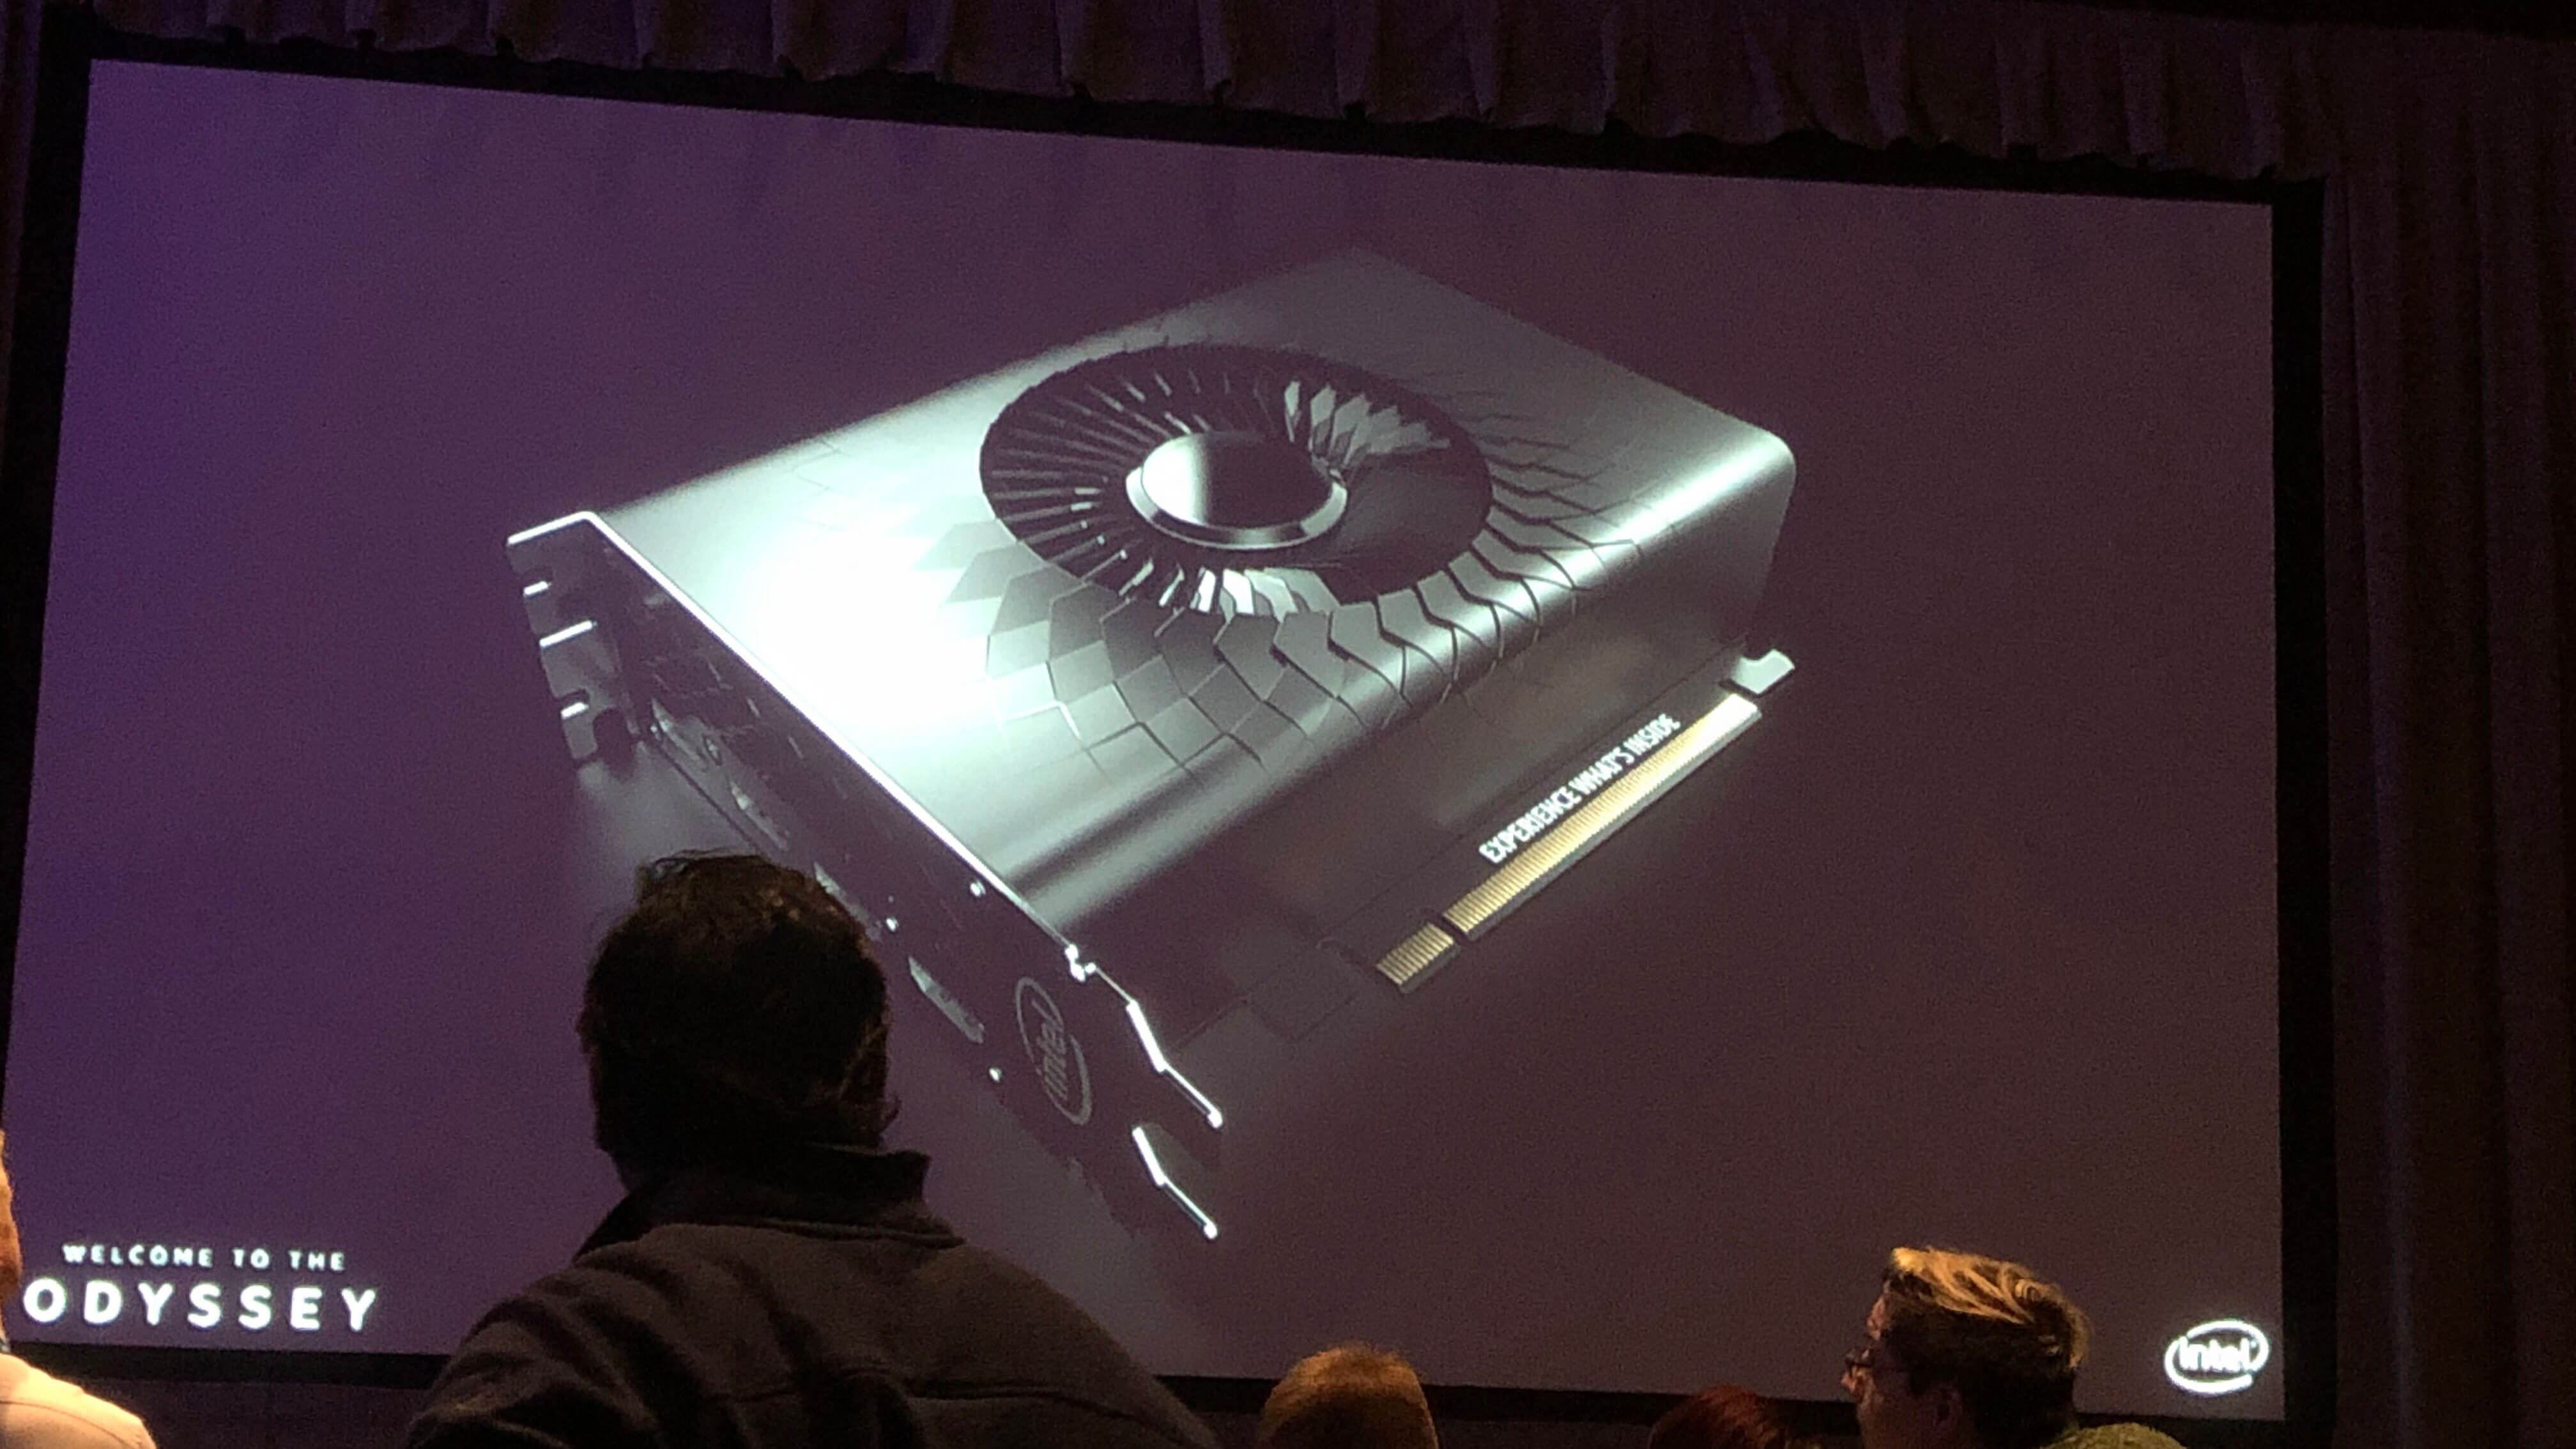 Best Graphics Card For Gaming 2020 Intel shows off designs for its discrete graphics card due in 2020